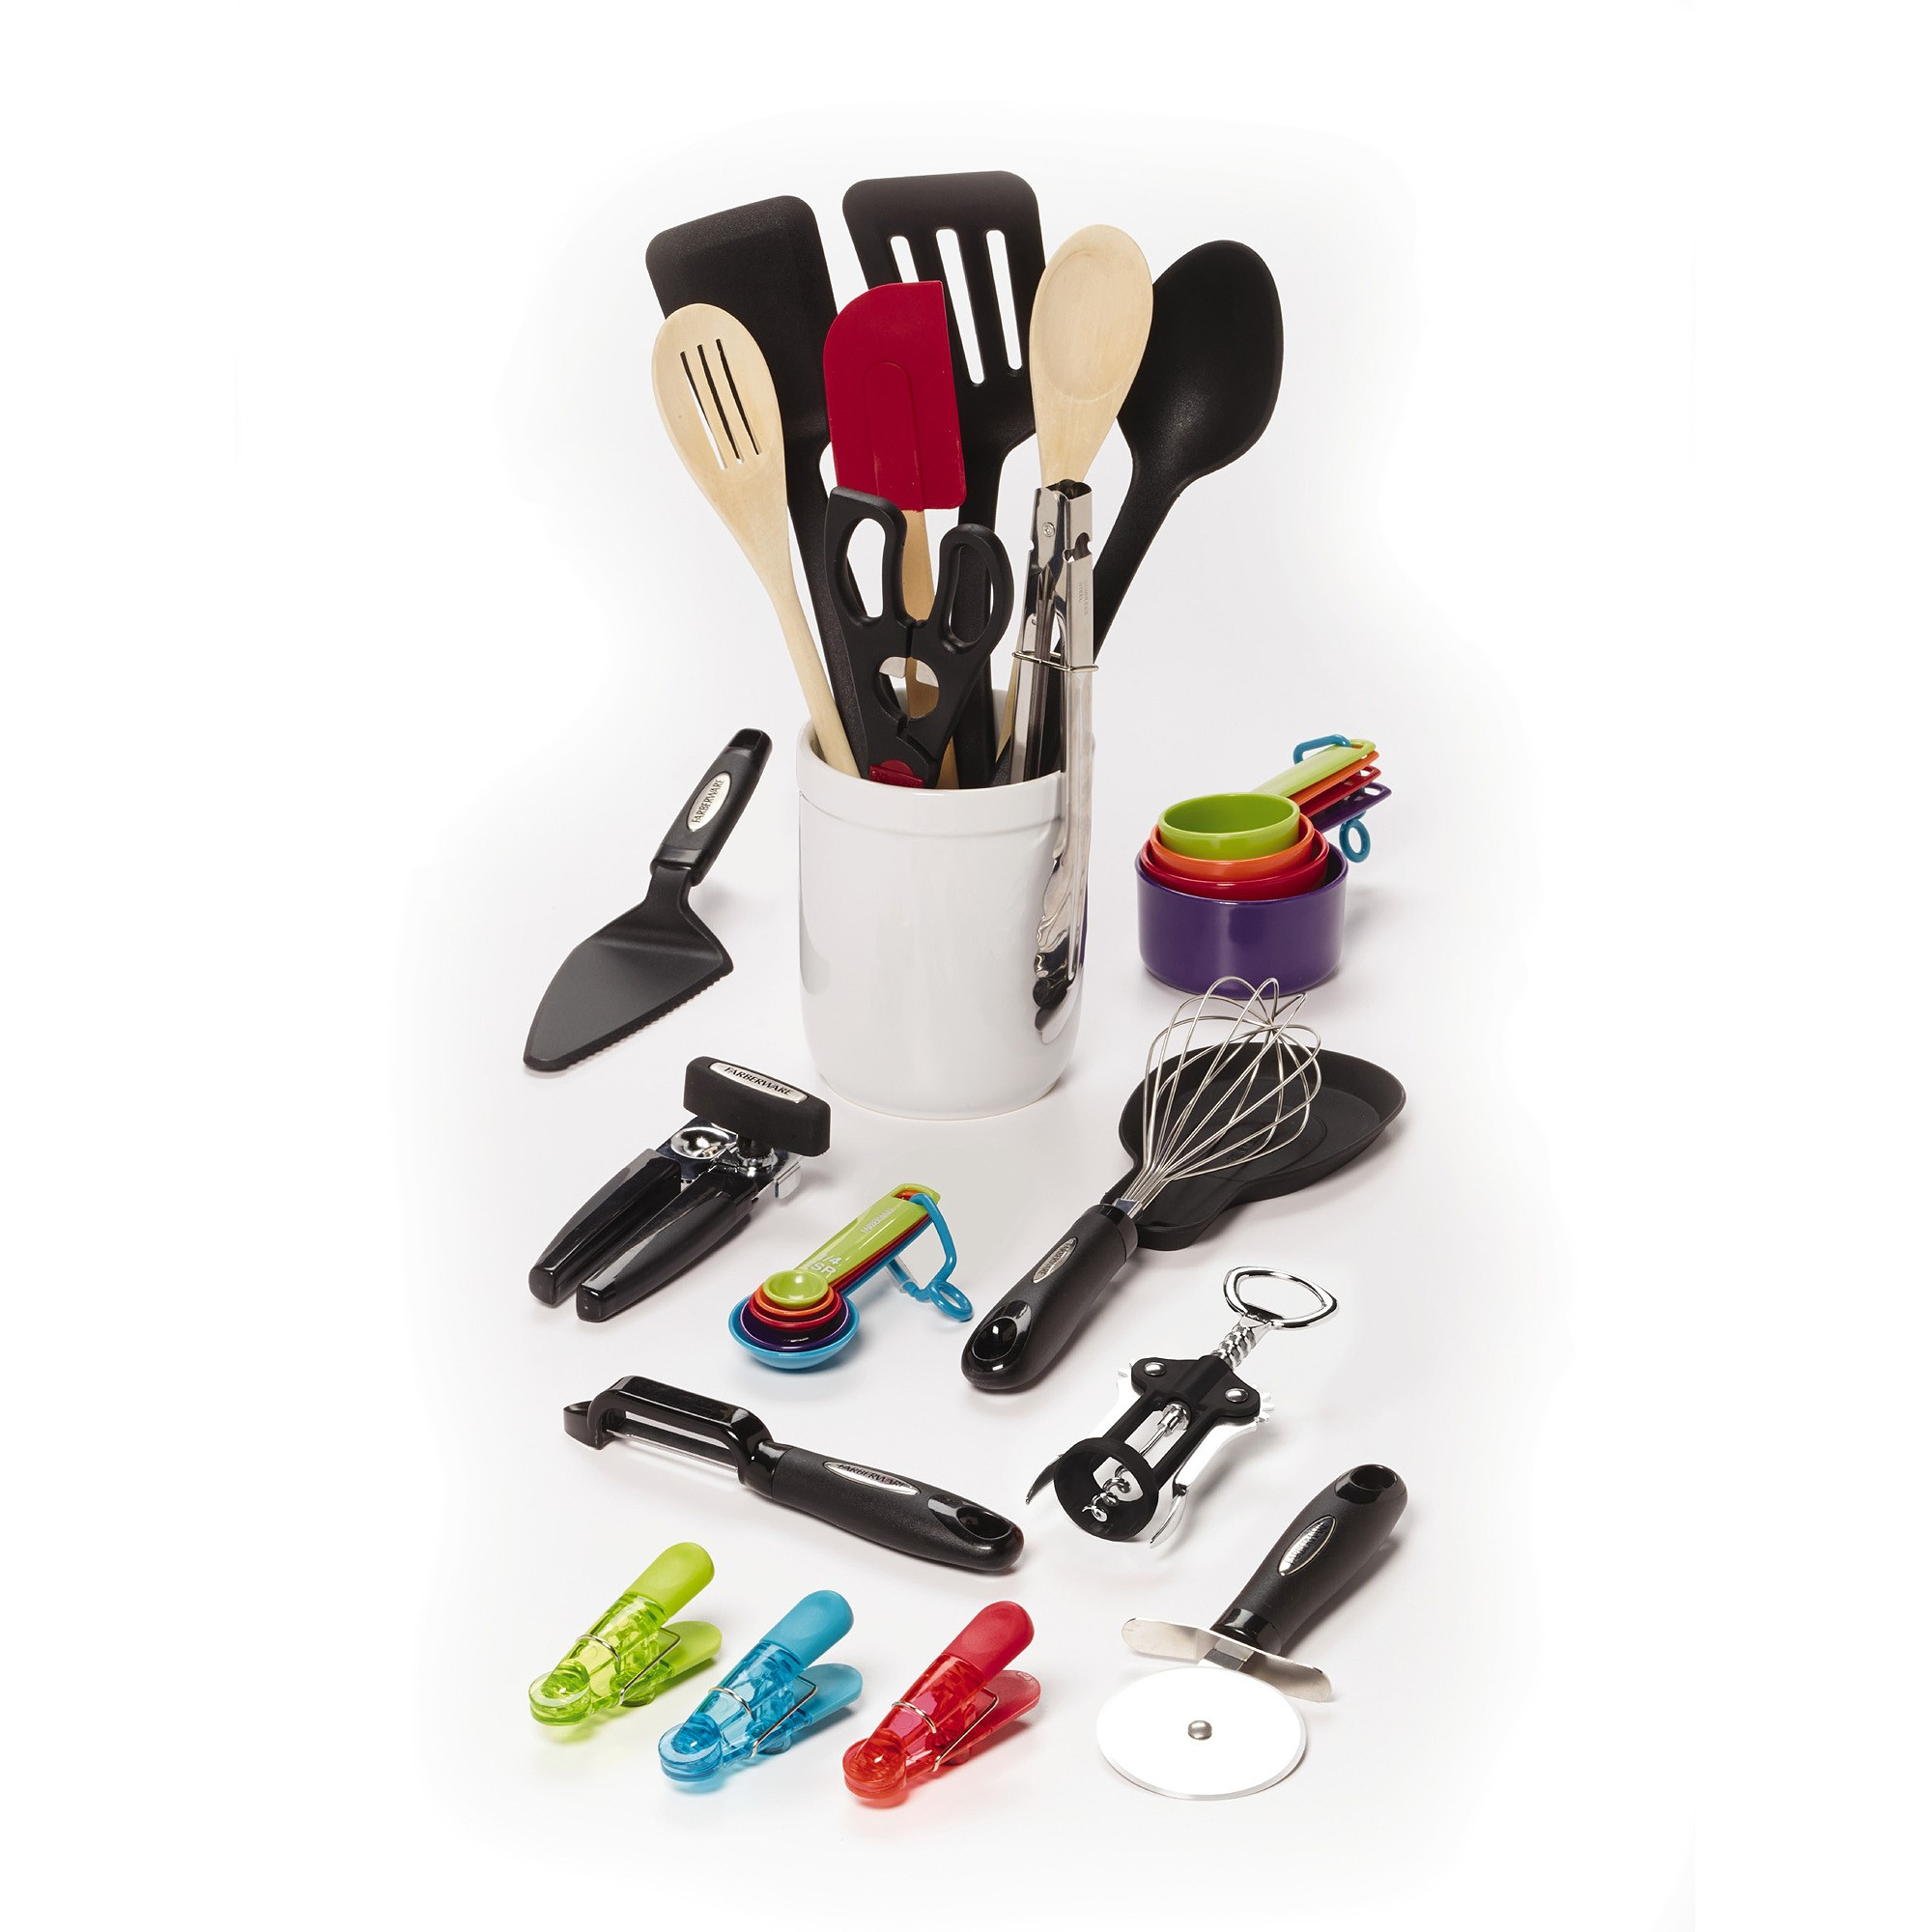 Farberware 28 Piece Kitchen Utensil and Gadget Set